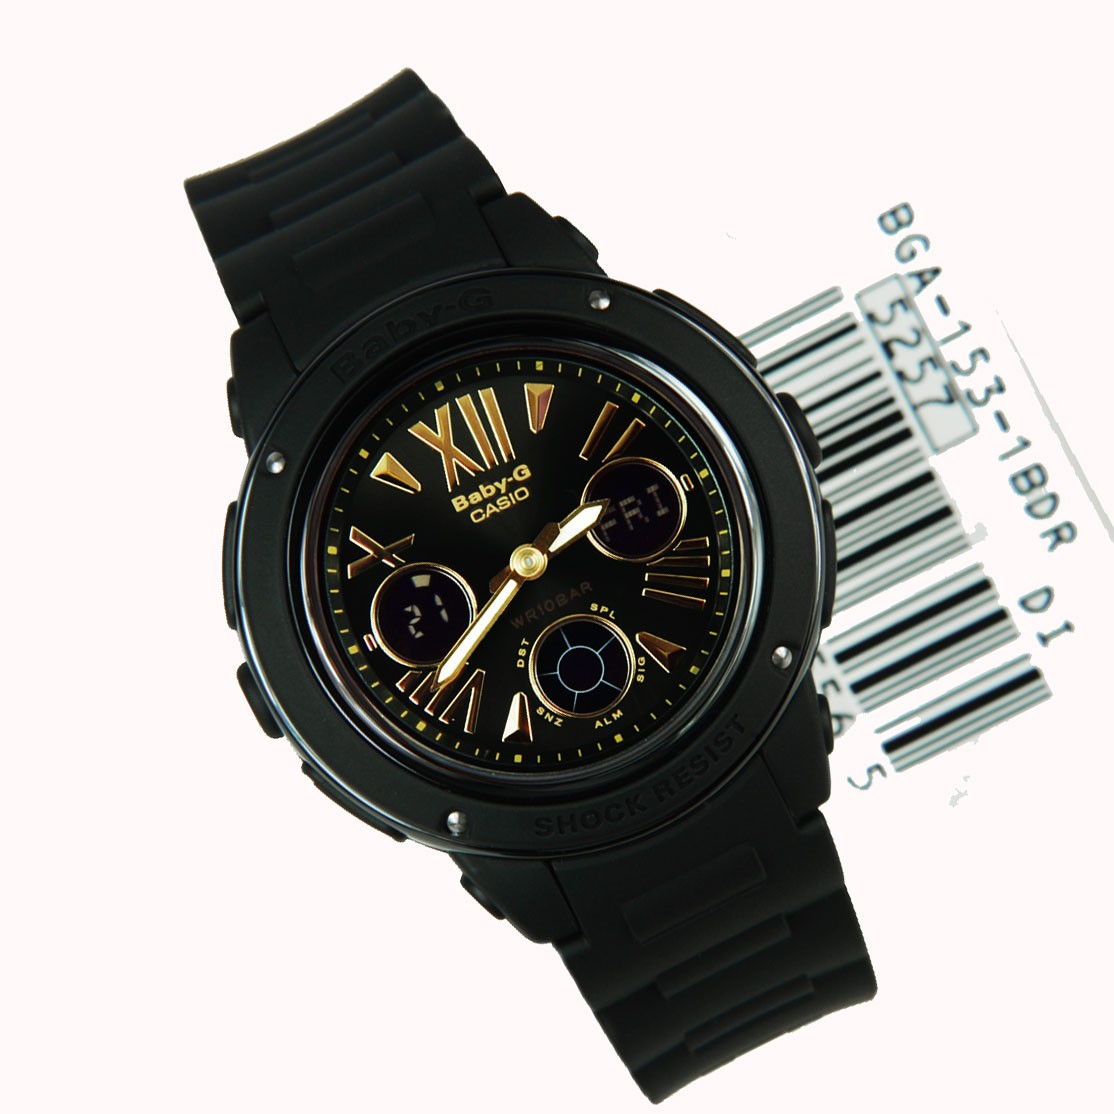 Casio BGA-153-1B